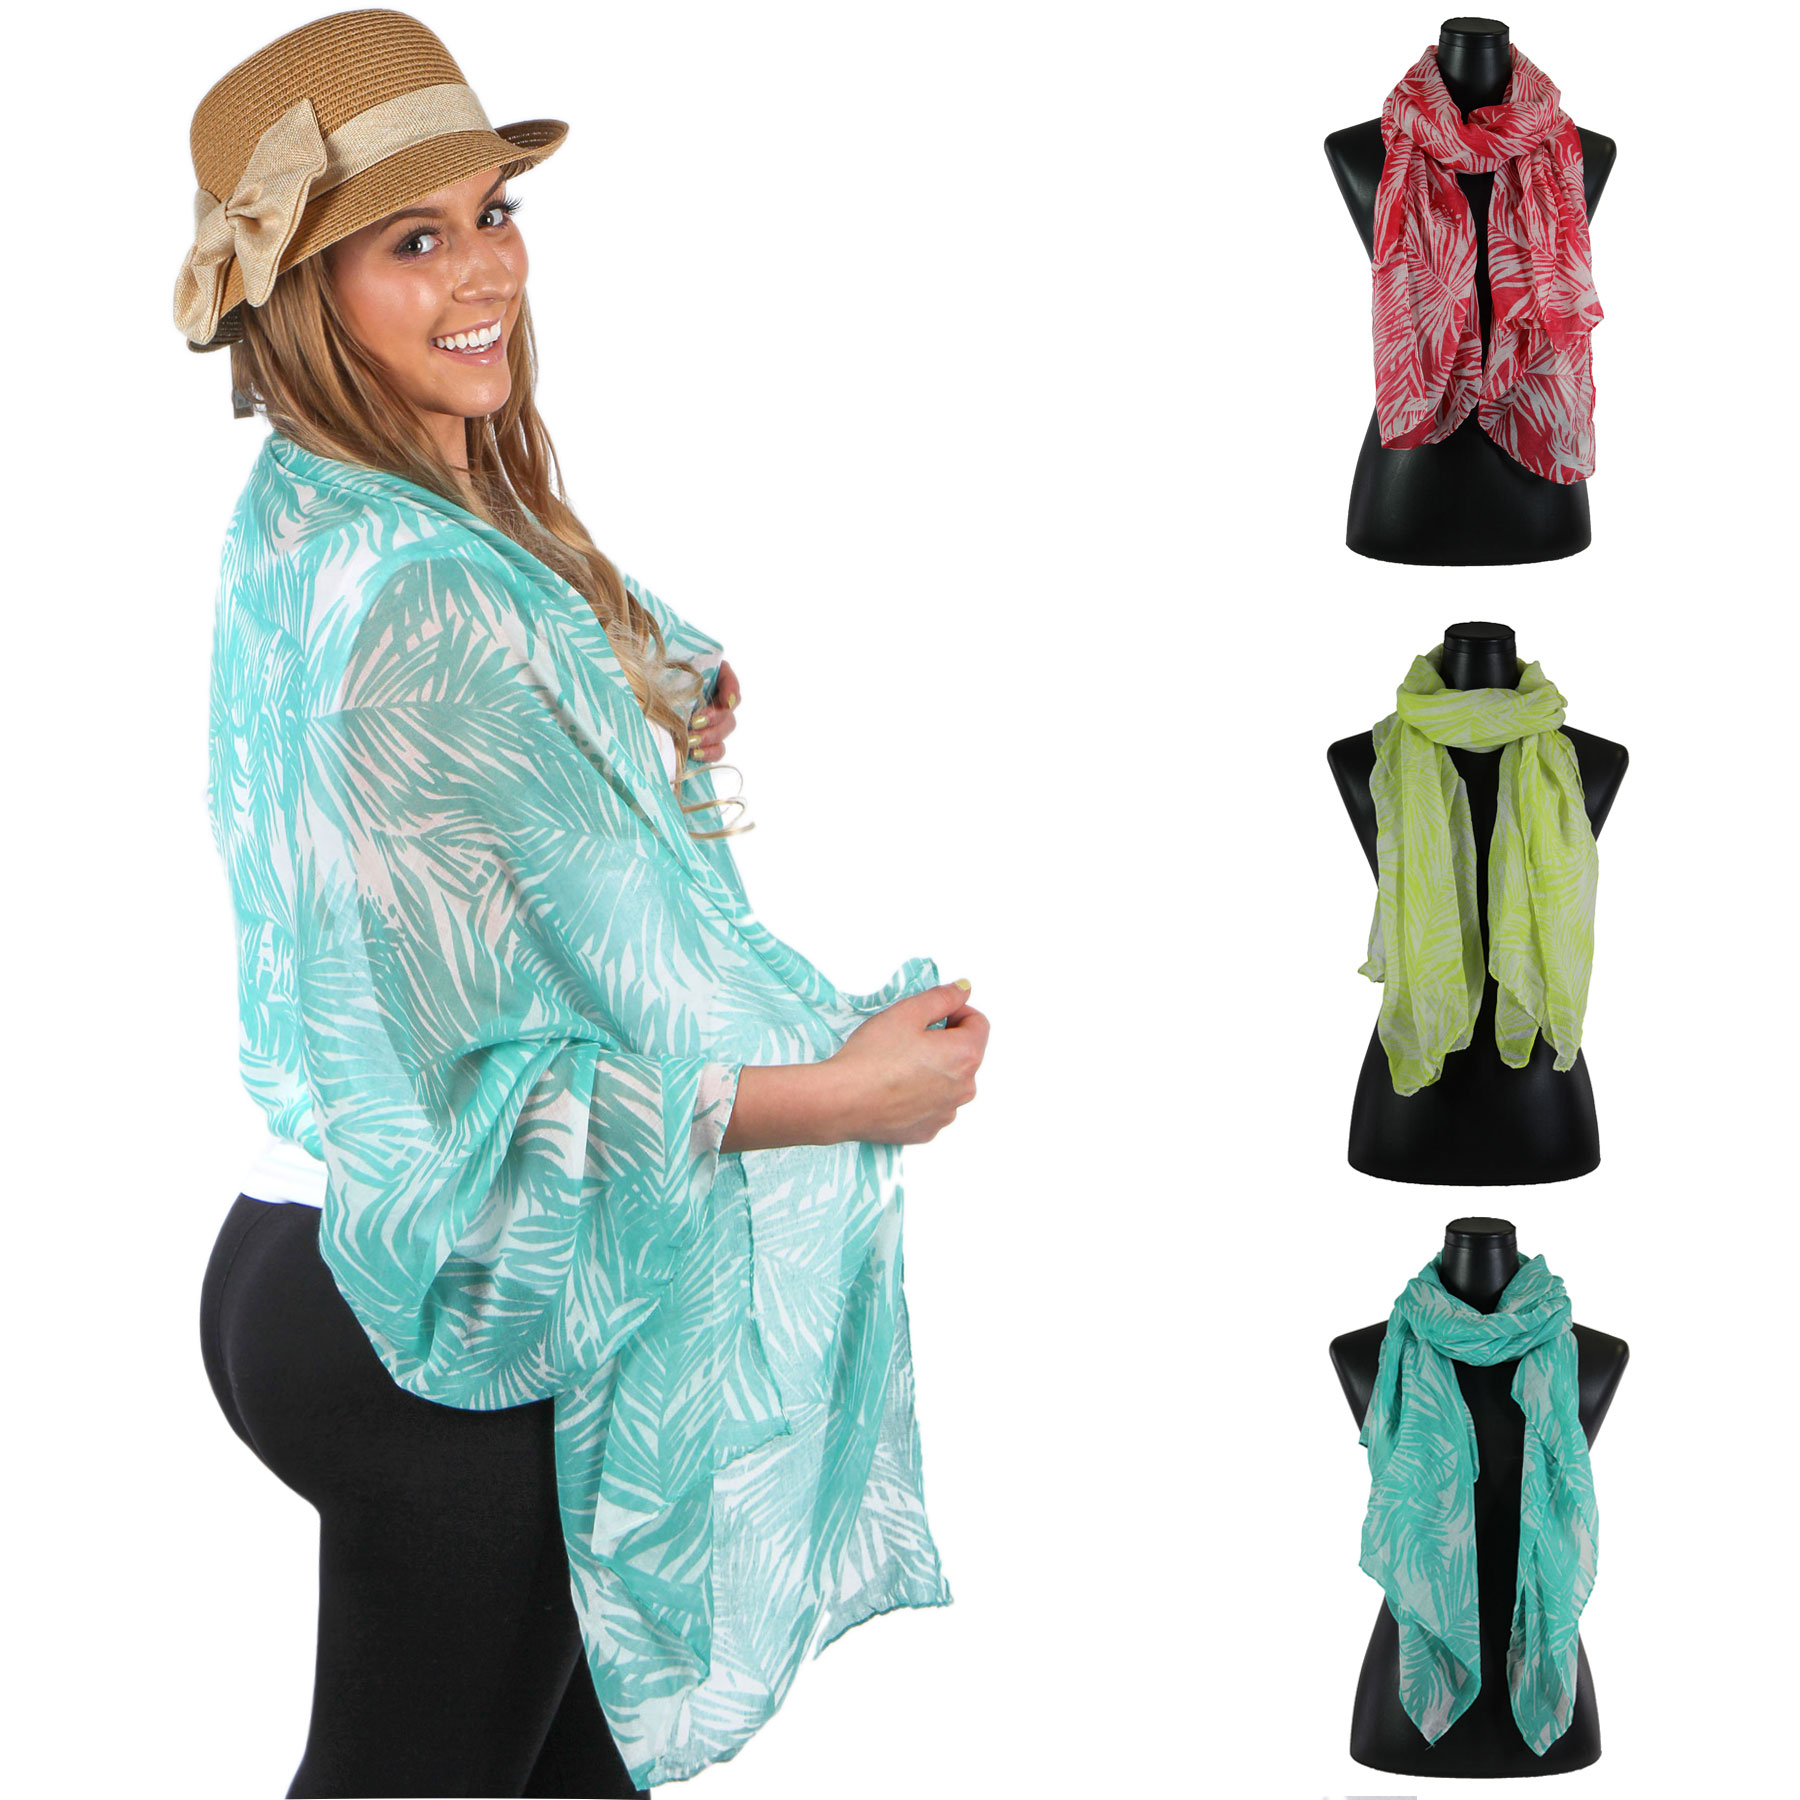 Big Scarves/Shawls - Palm Tree 8286